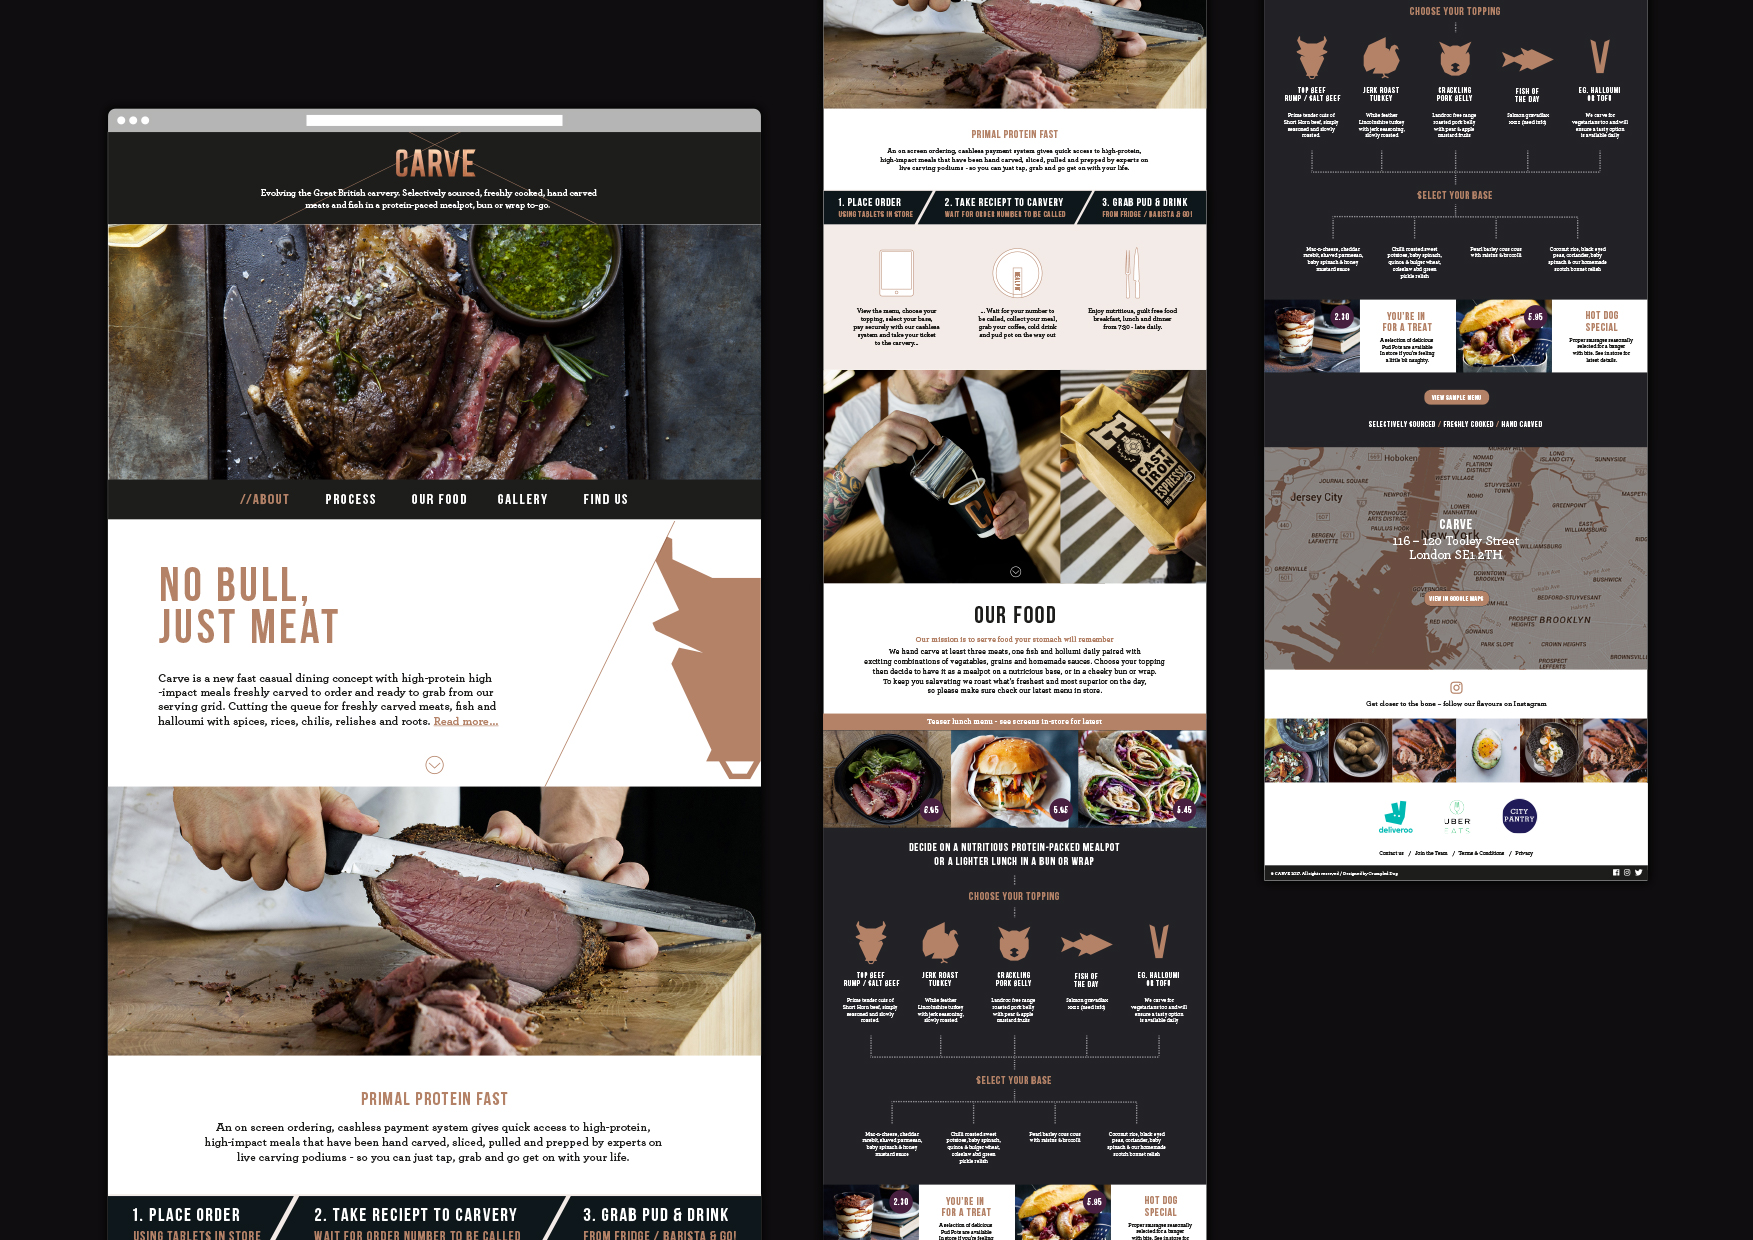 Carve branding website design